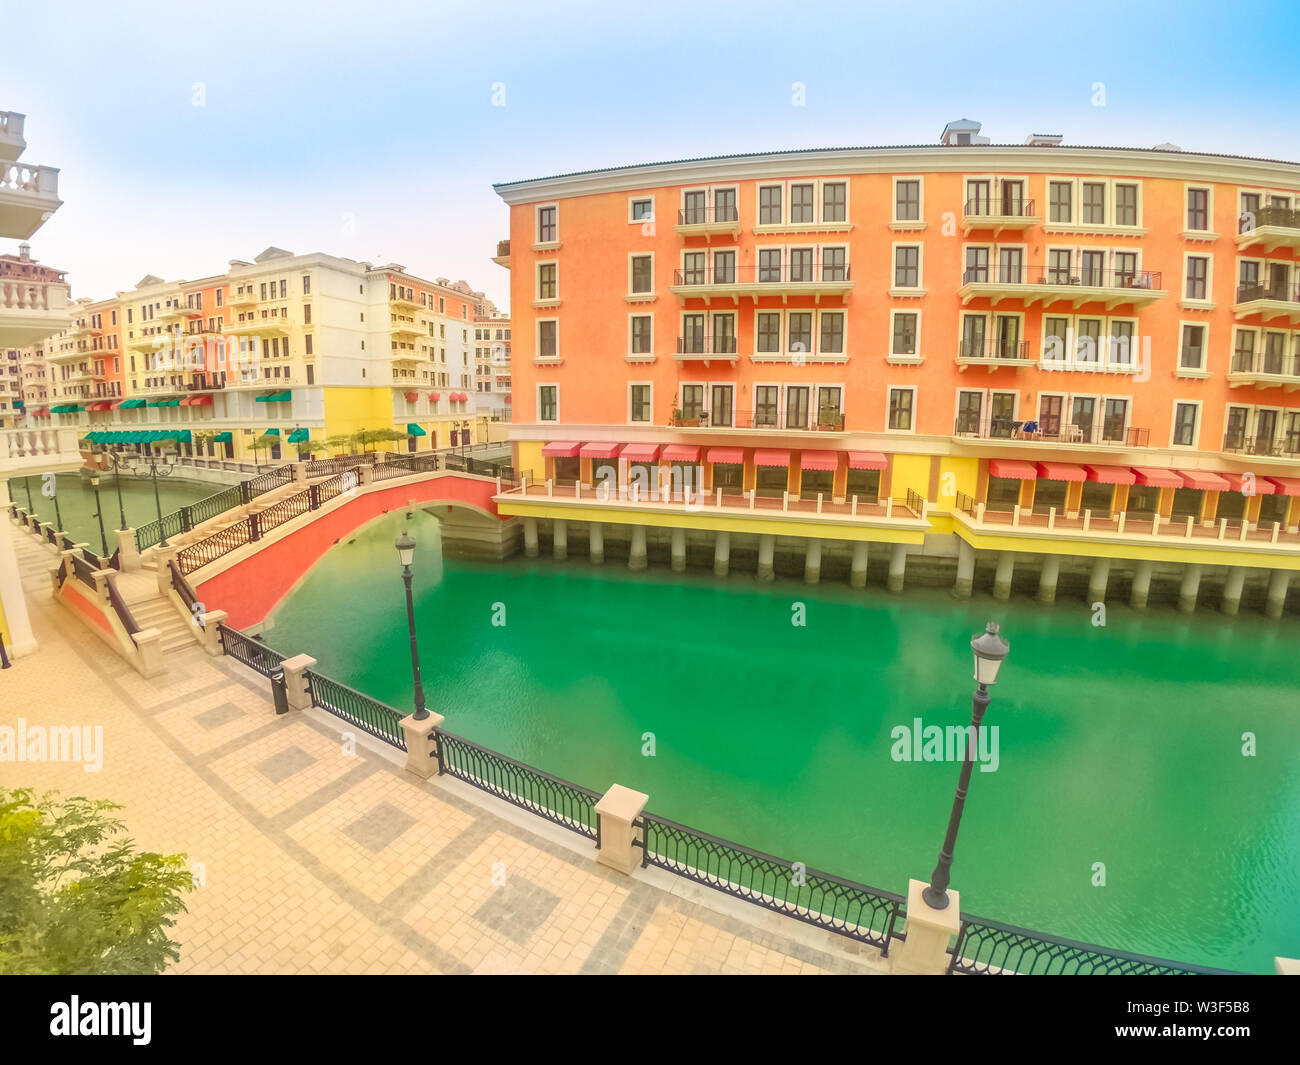 Wide angle view of panoramic bridge in Venice at Qanat Quartier in the Pearl, Persian Gulf, Middle East. Aerial picturesque district icon of Doha, Qat - Stock Image